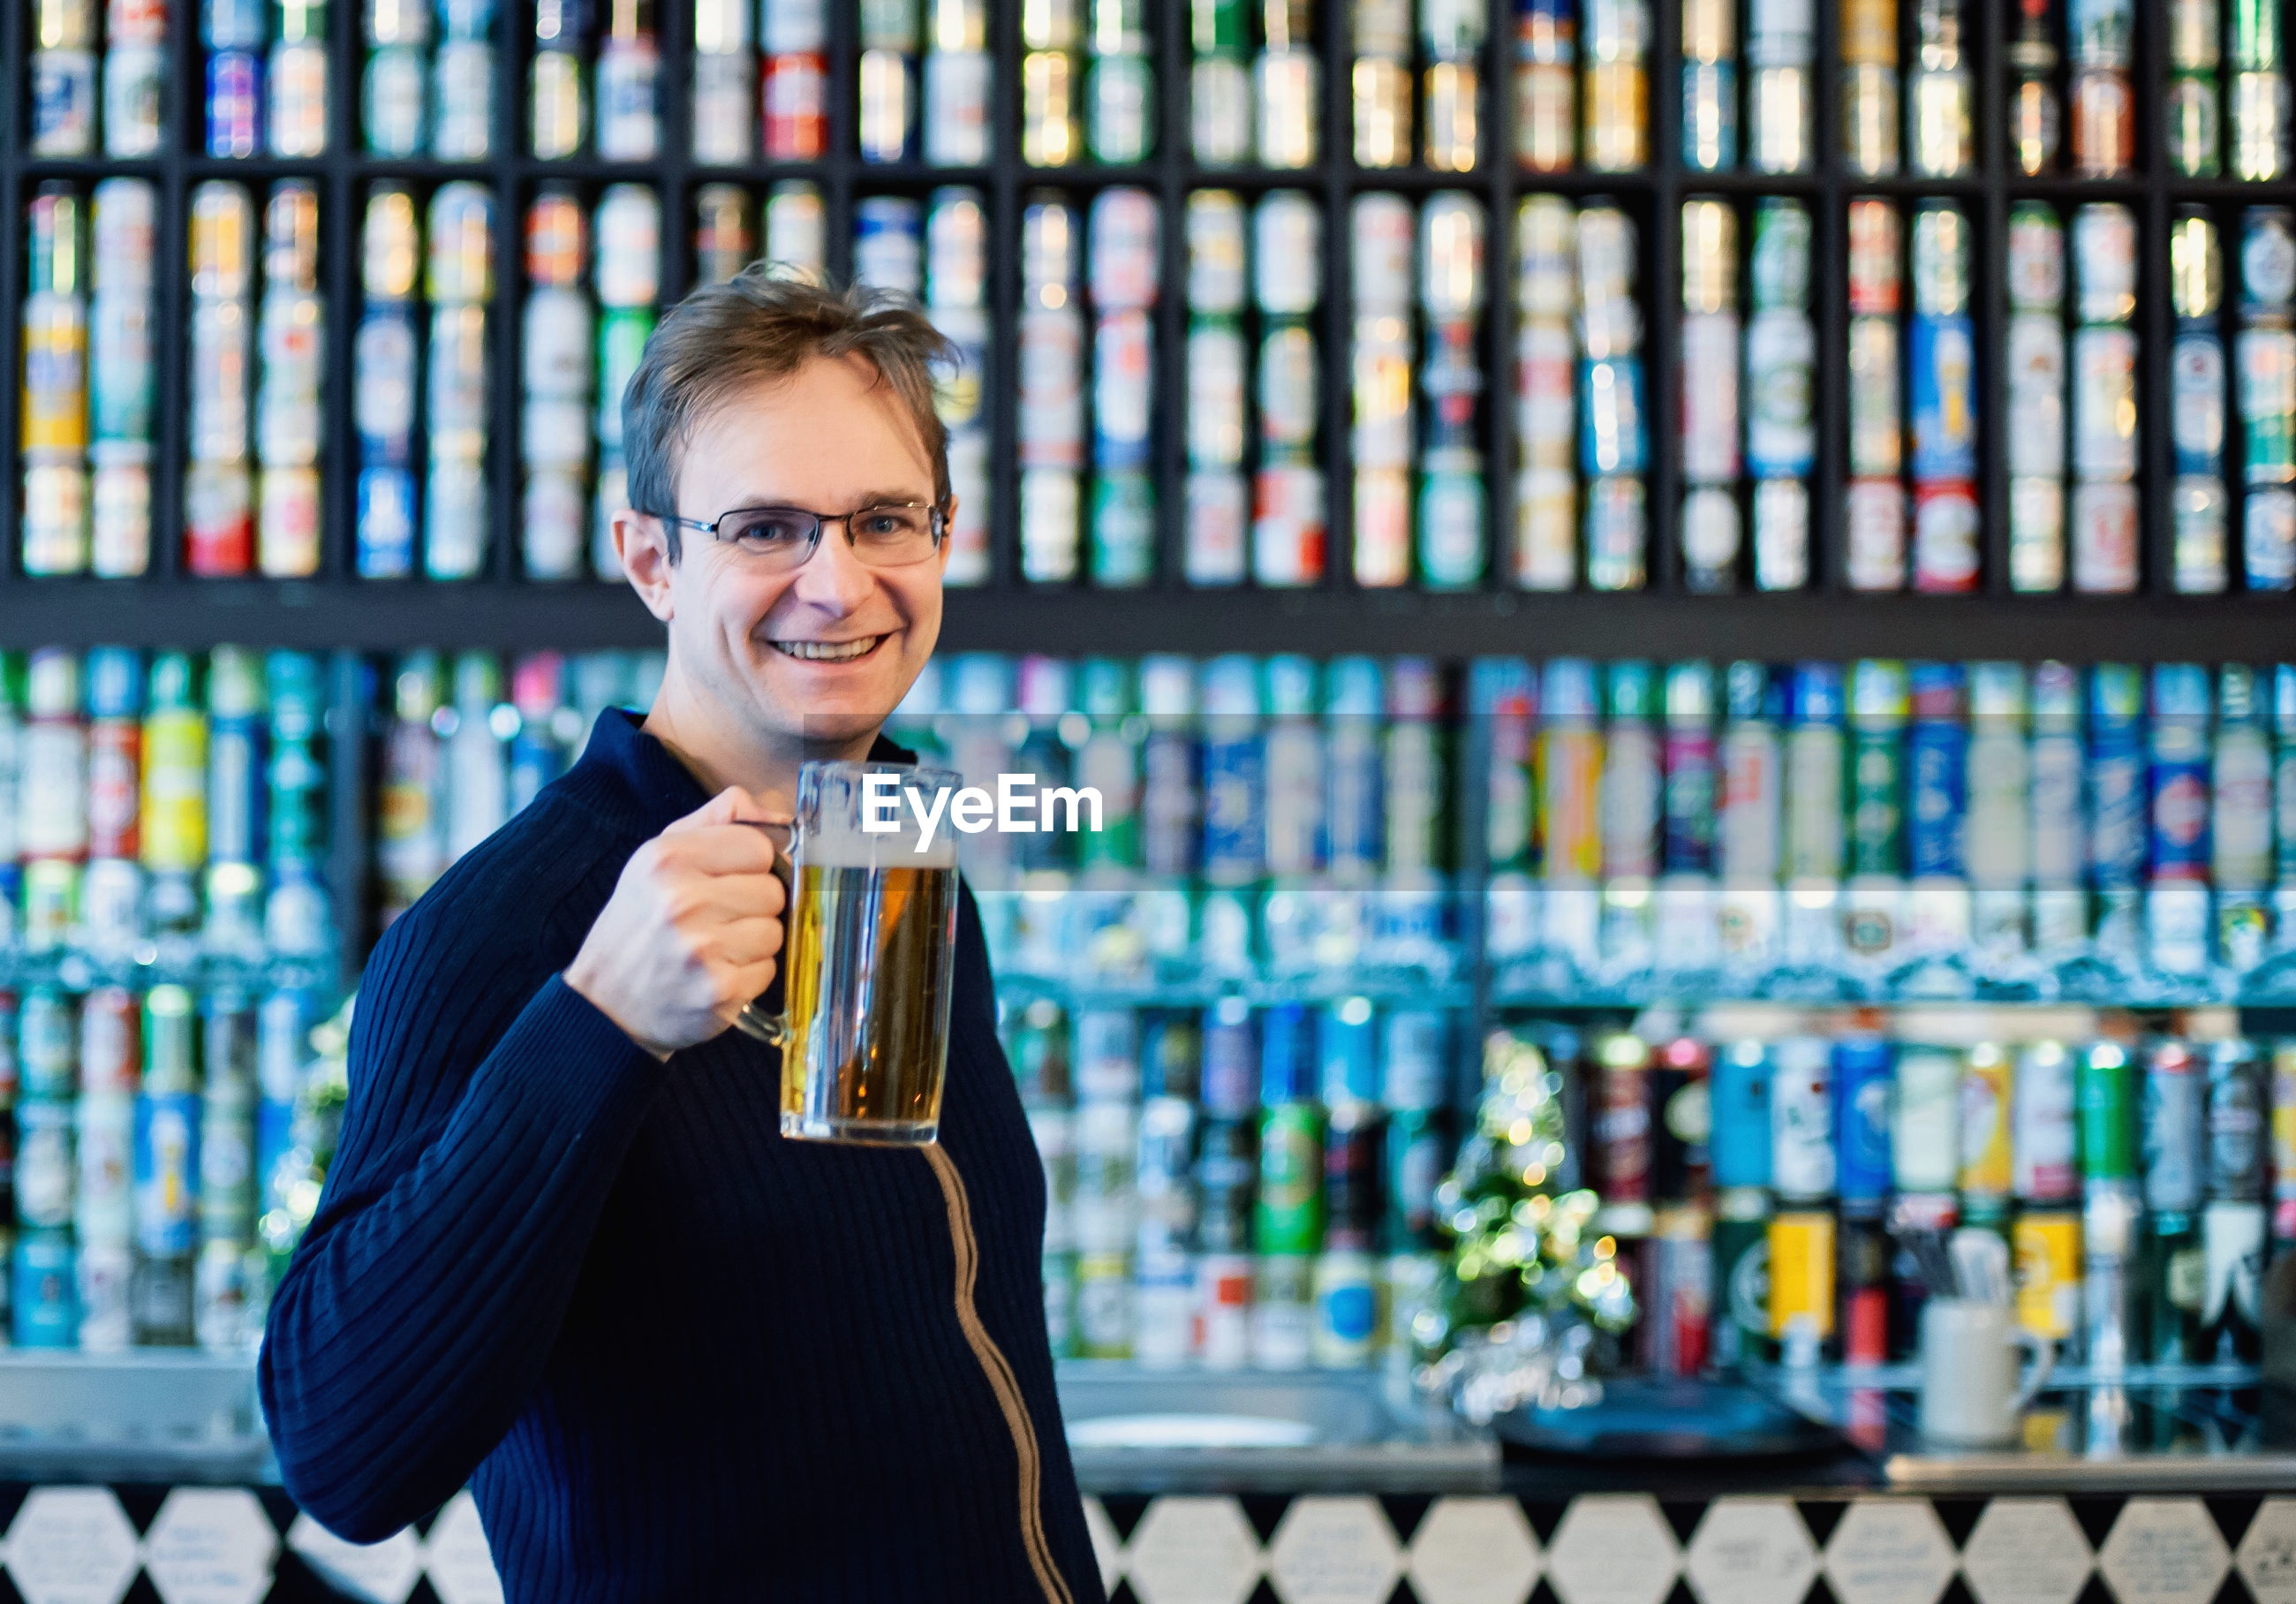 Portrait of smiling man holding beer glass